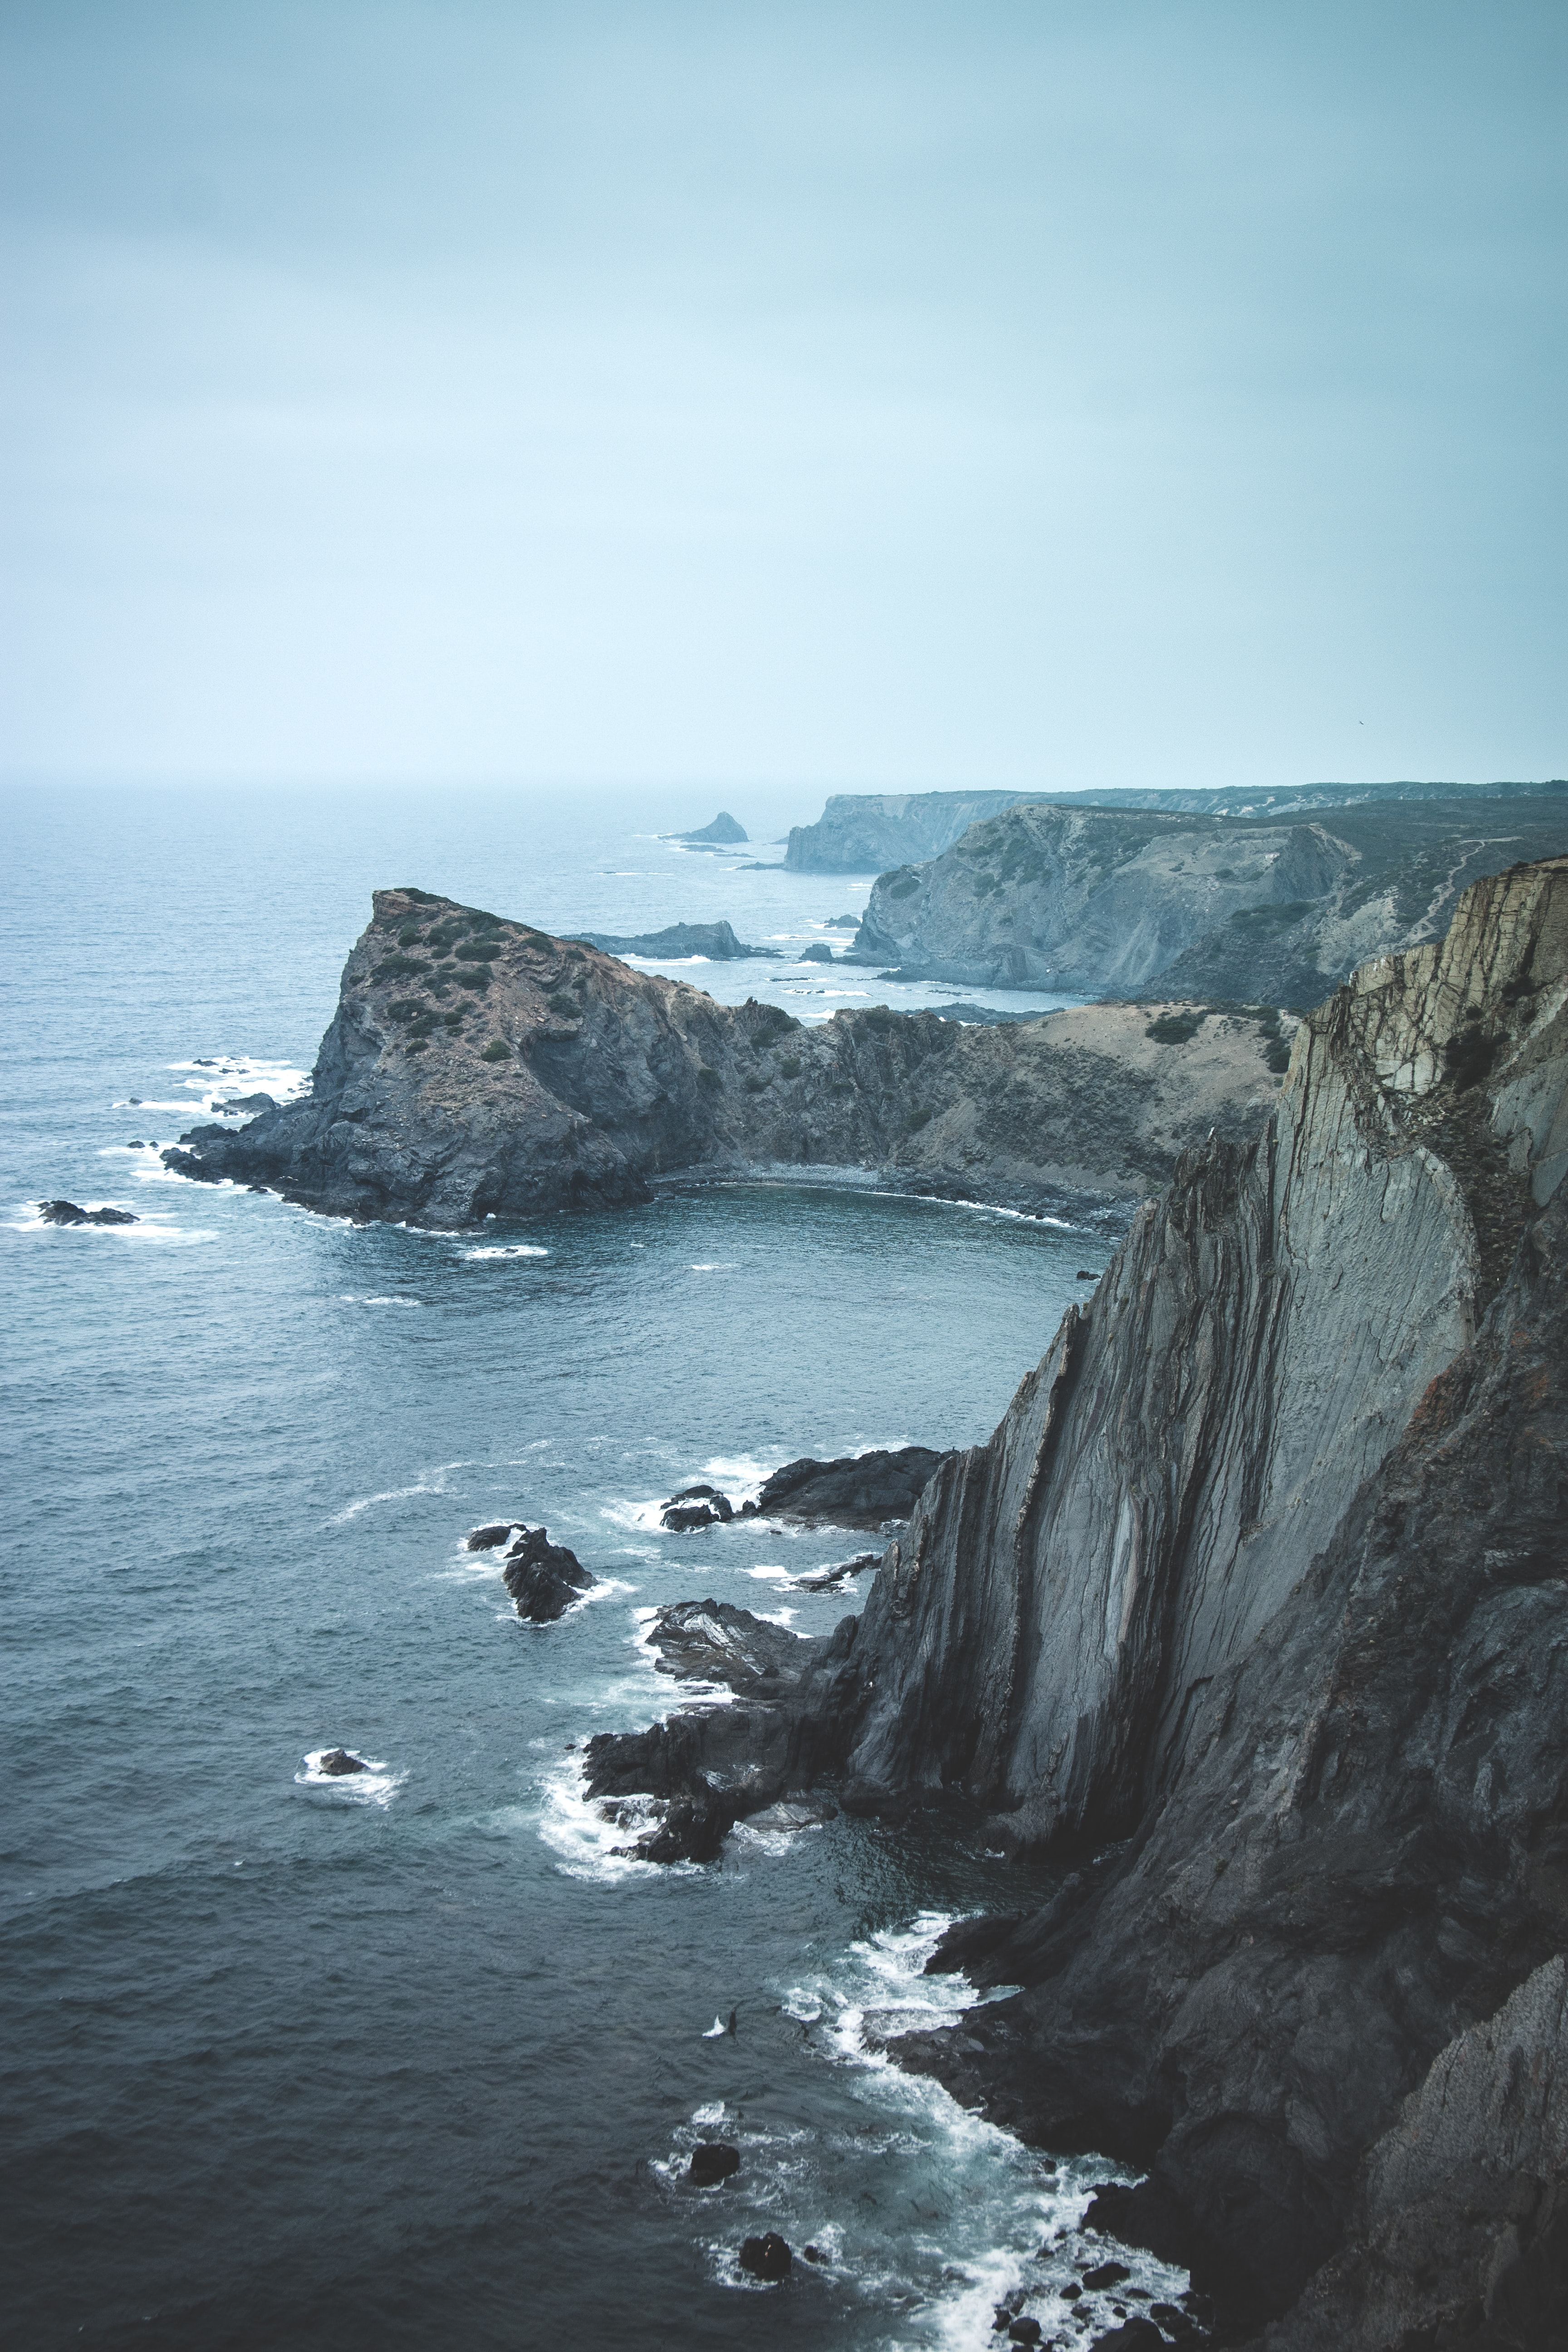 The wild central coast.  Written with you in mind by  Bernard T. Windwillow You know who I mean.  This was originally formatted in iambic pentameter with heroic couplets stories